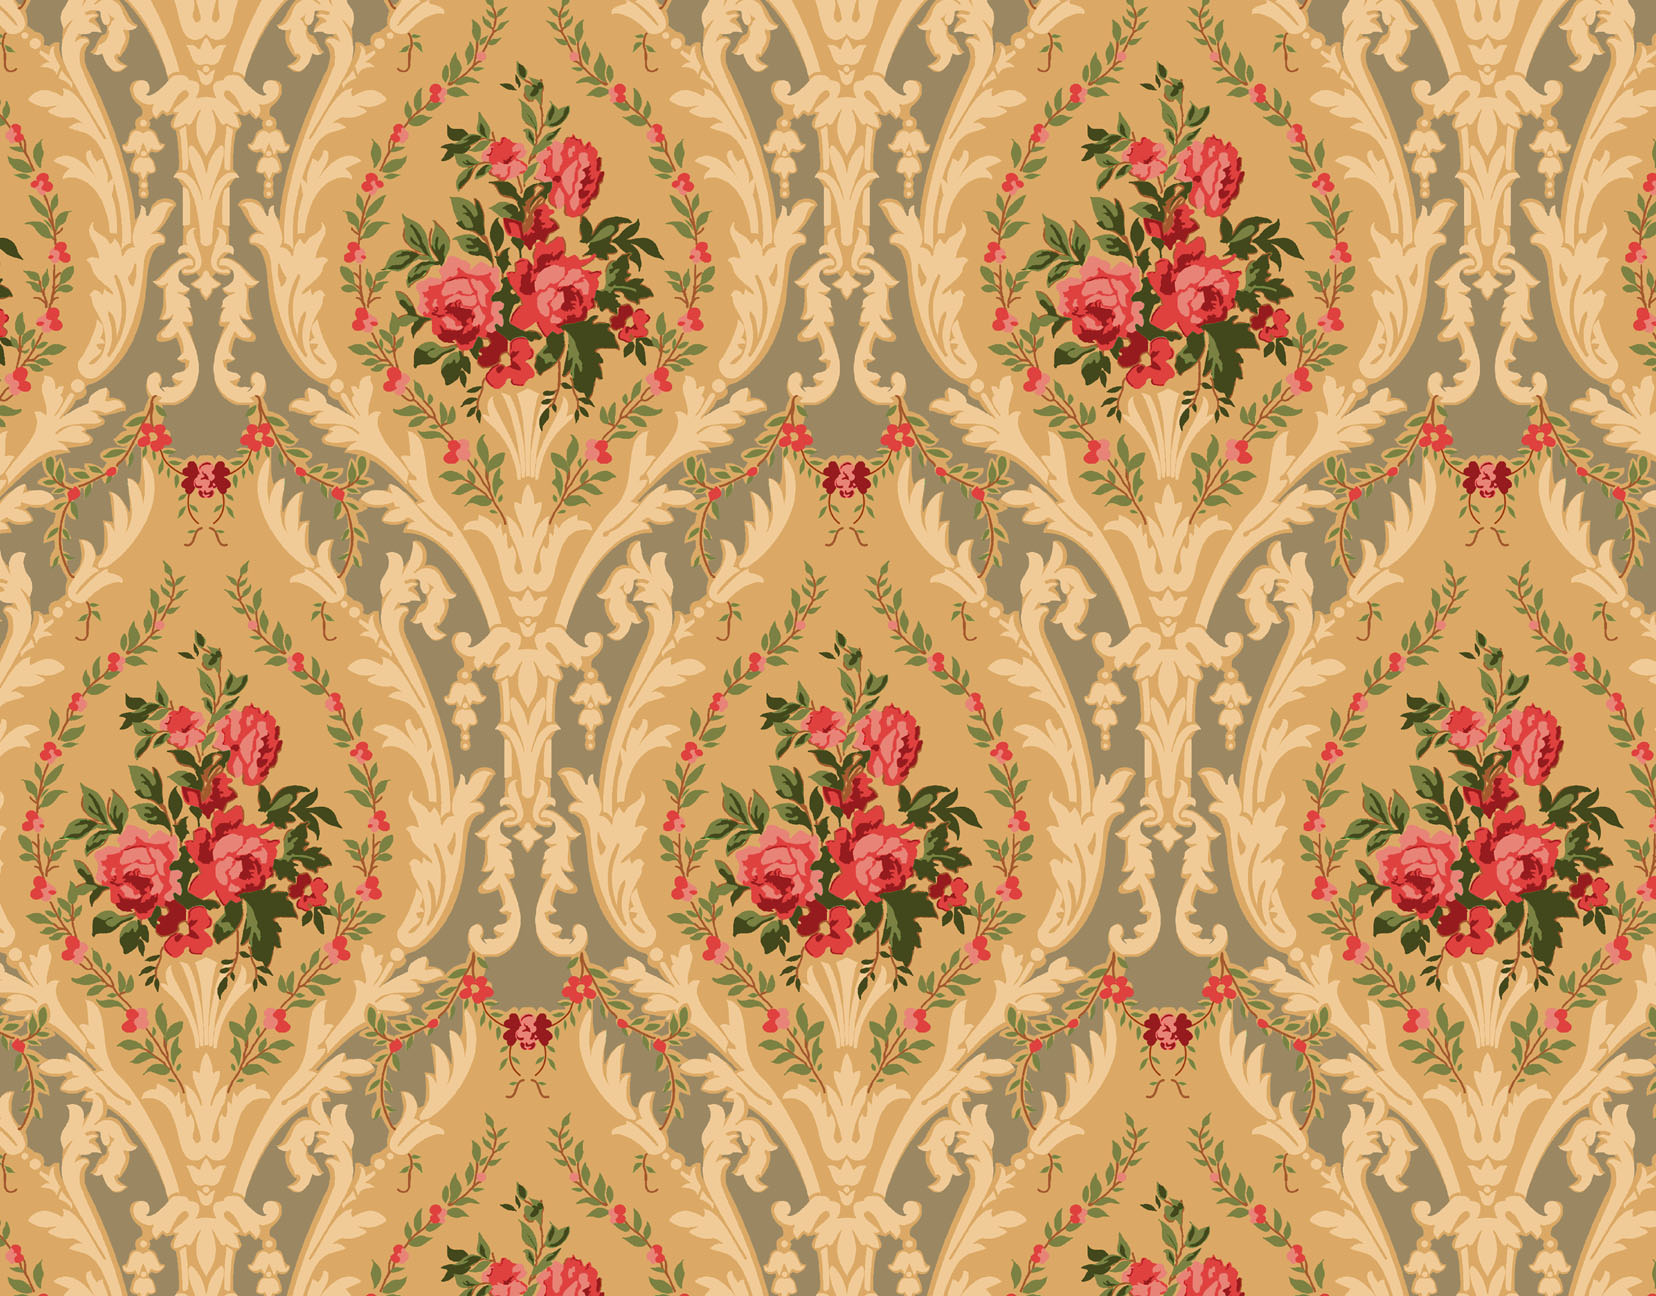 44 Historical Wallpaper Designs On Wallpapersafari